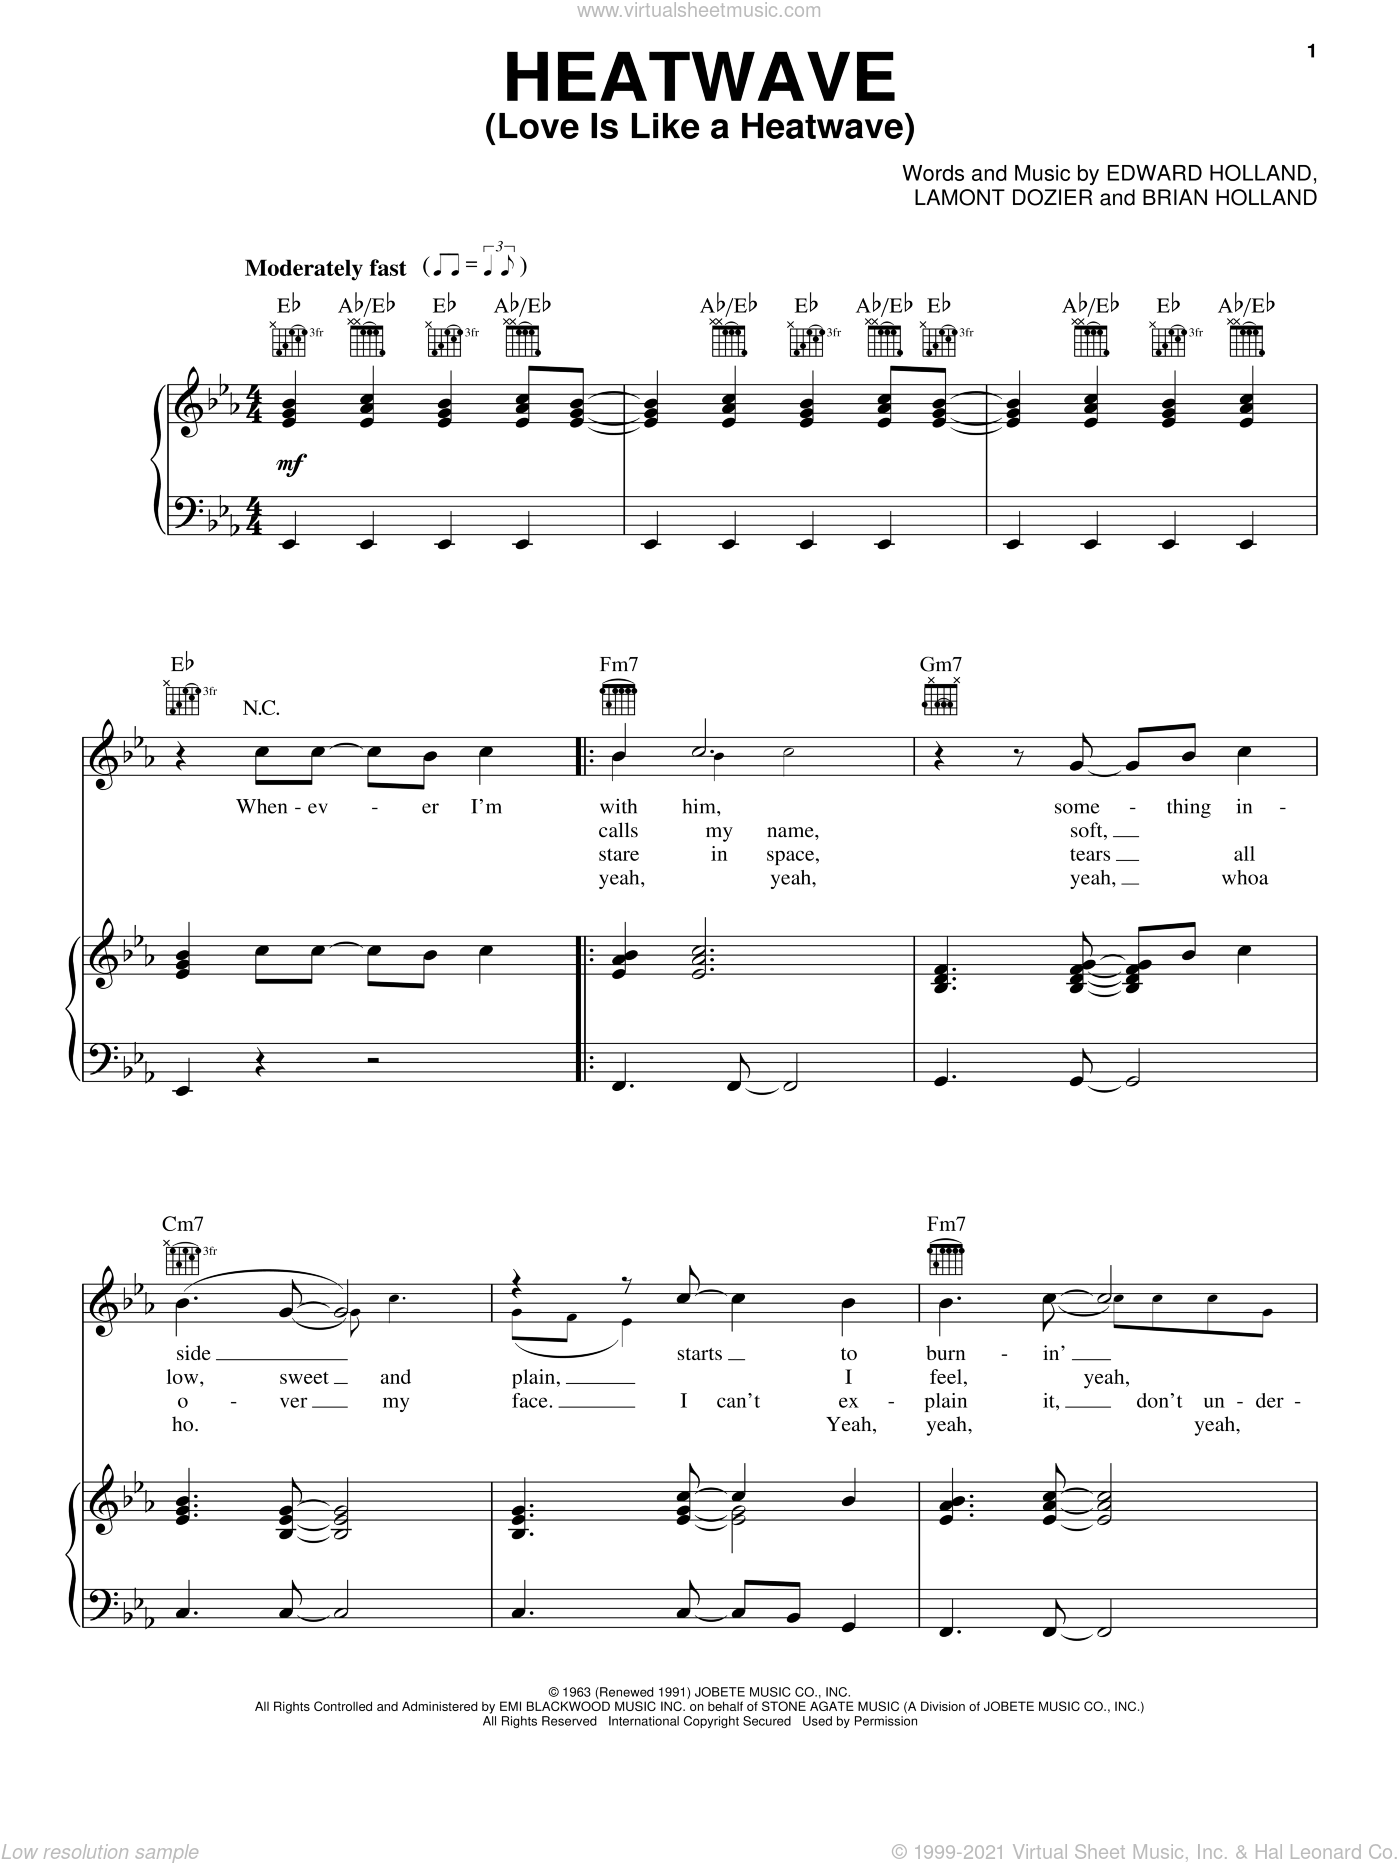 Heatwave (Love Is Like A Heatwave) sheet music for voice, piano or guitar by Martha & The Vandellas, Brian Holland, Eddie Holland and Lamont Dozier, intermediate skill level